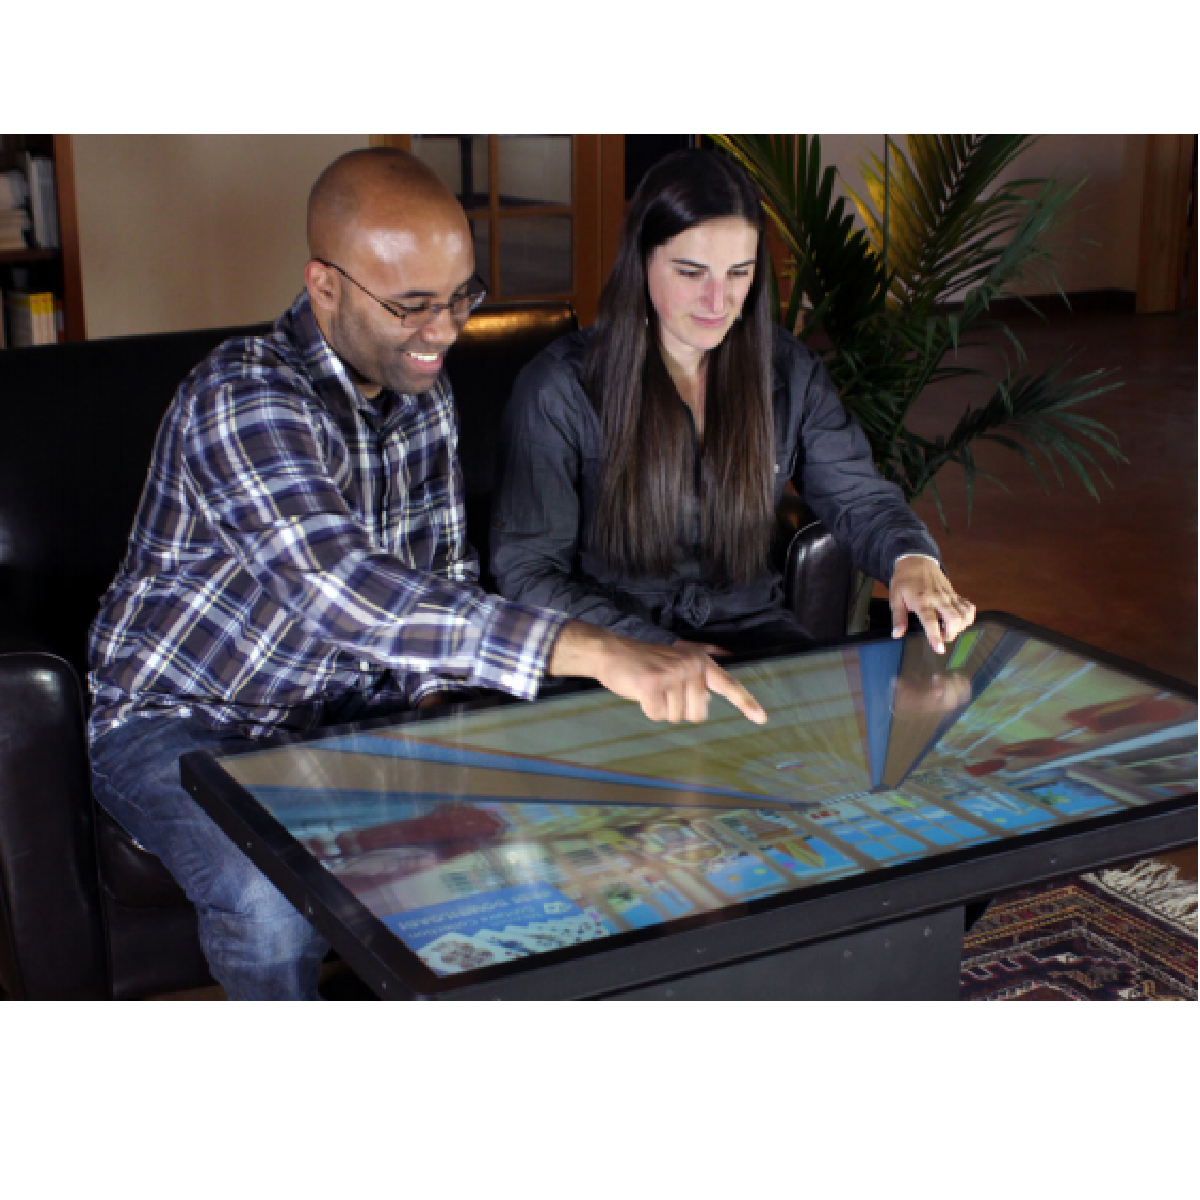 La table basse Multitouch tactile par Ideum